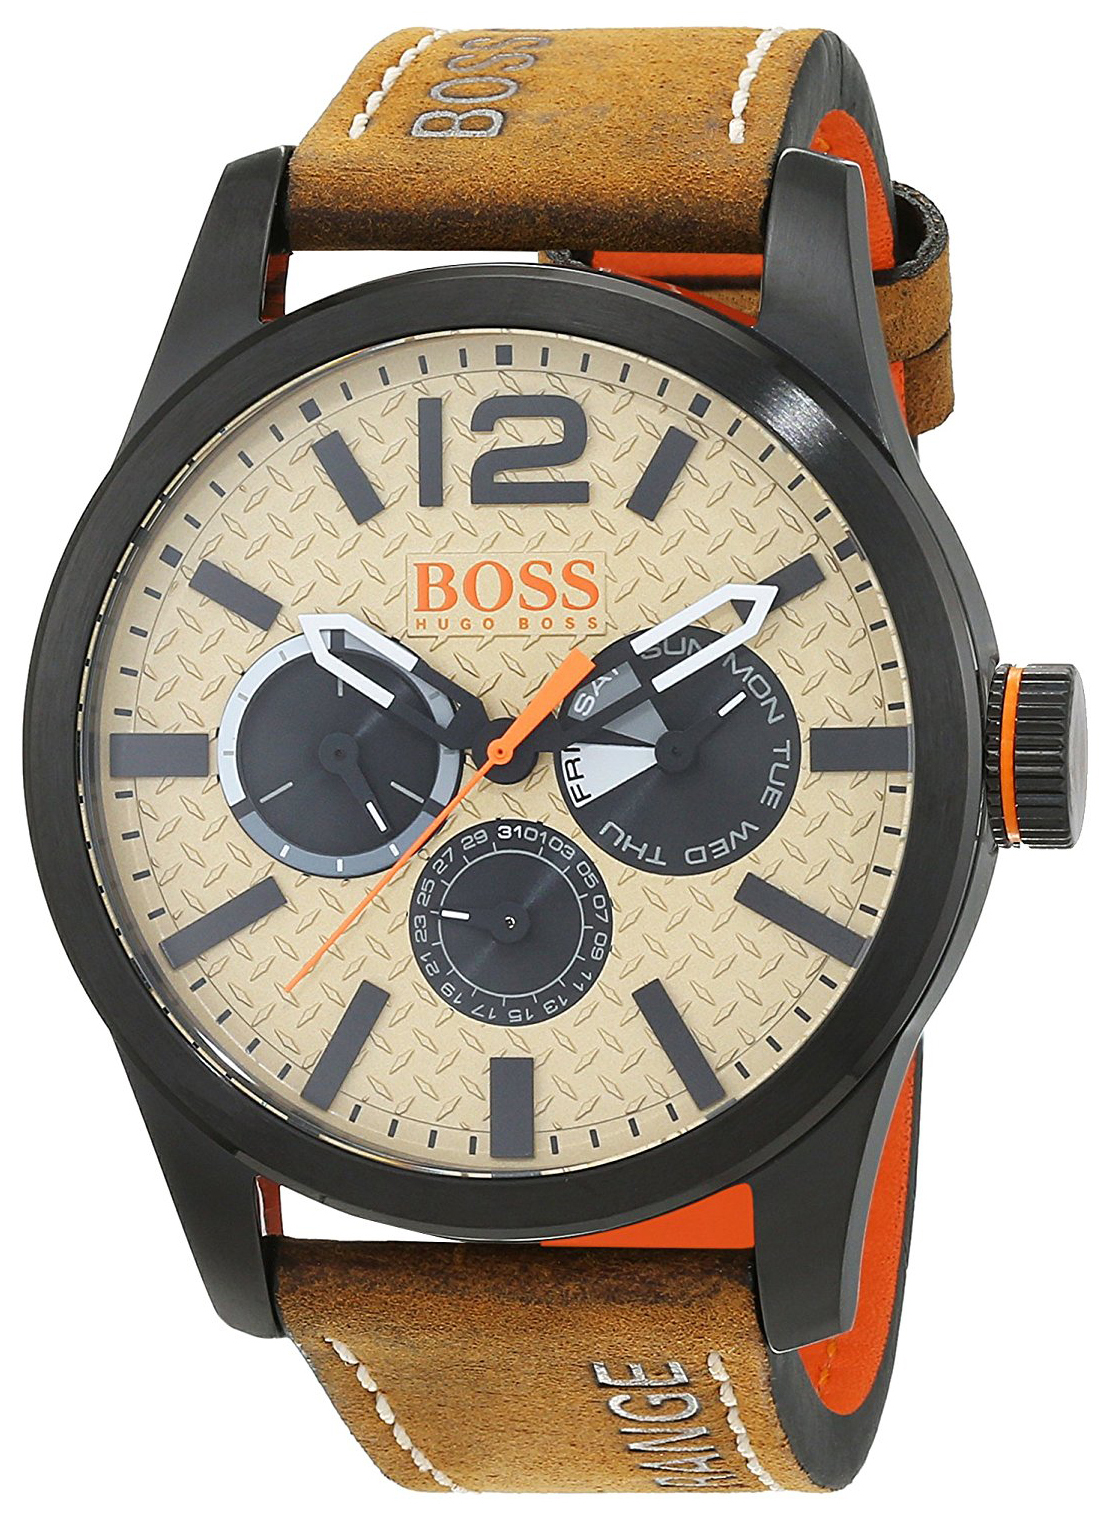 Hugo Boss Paris Herrklocka 1513237 Beige/Läder Ø47 mm - Hugo Boss